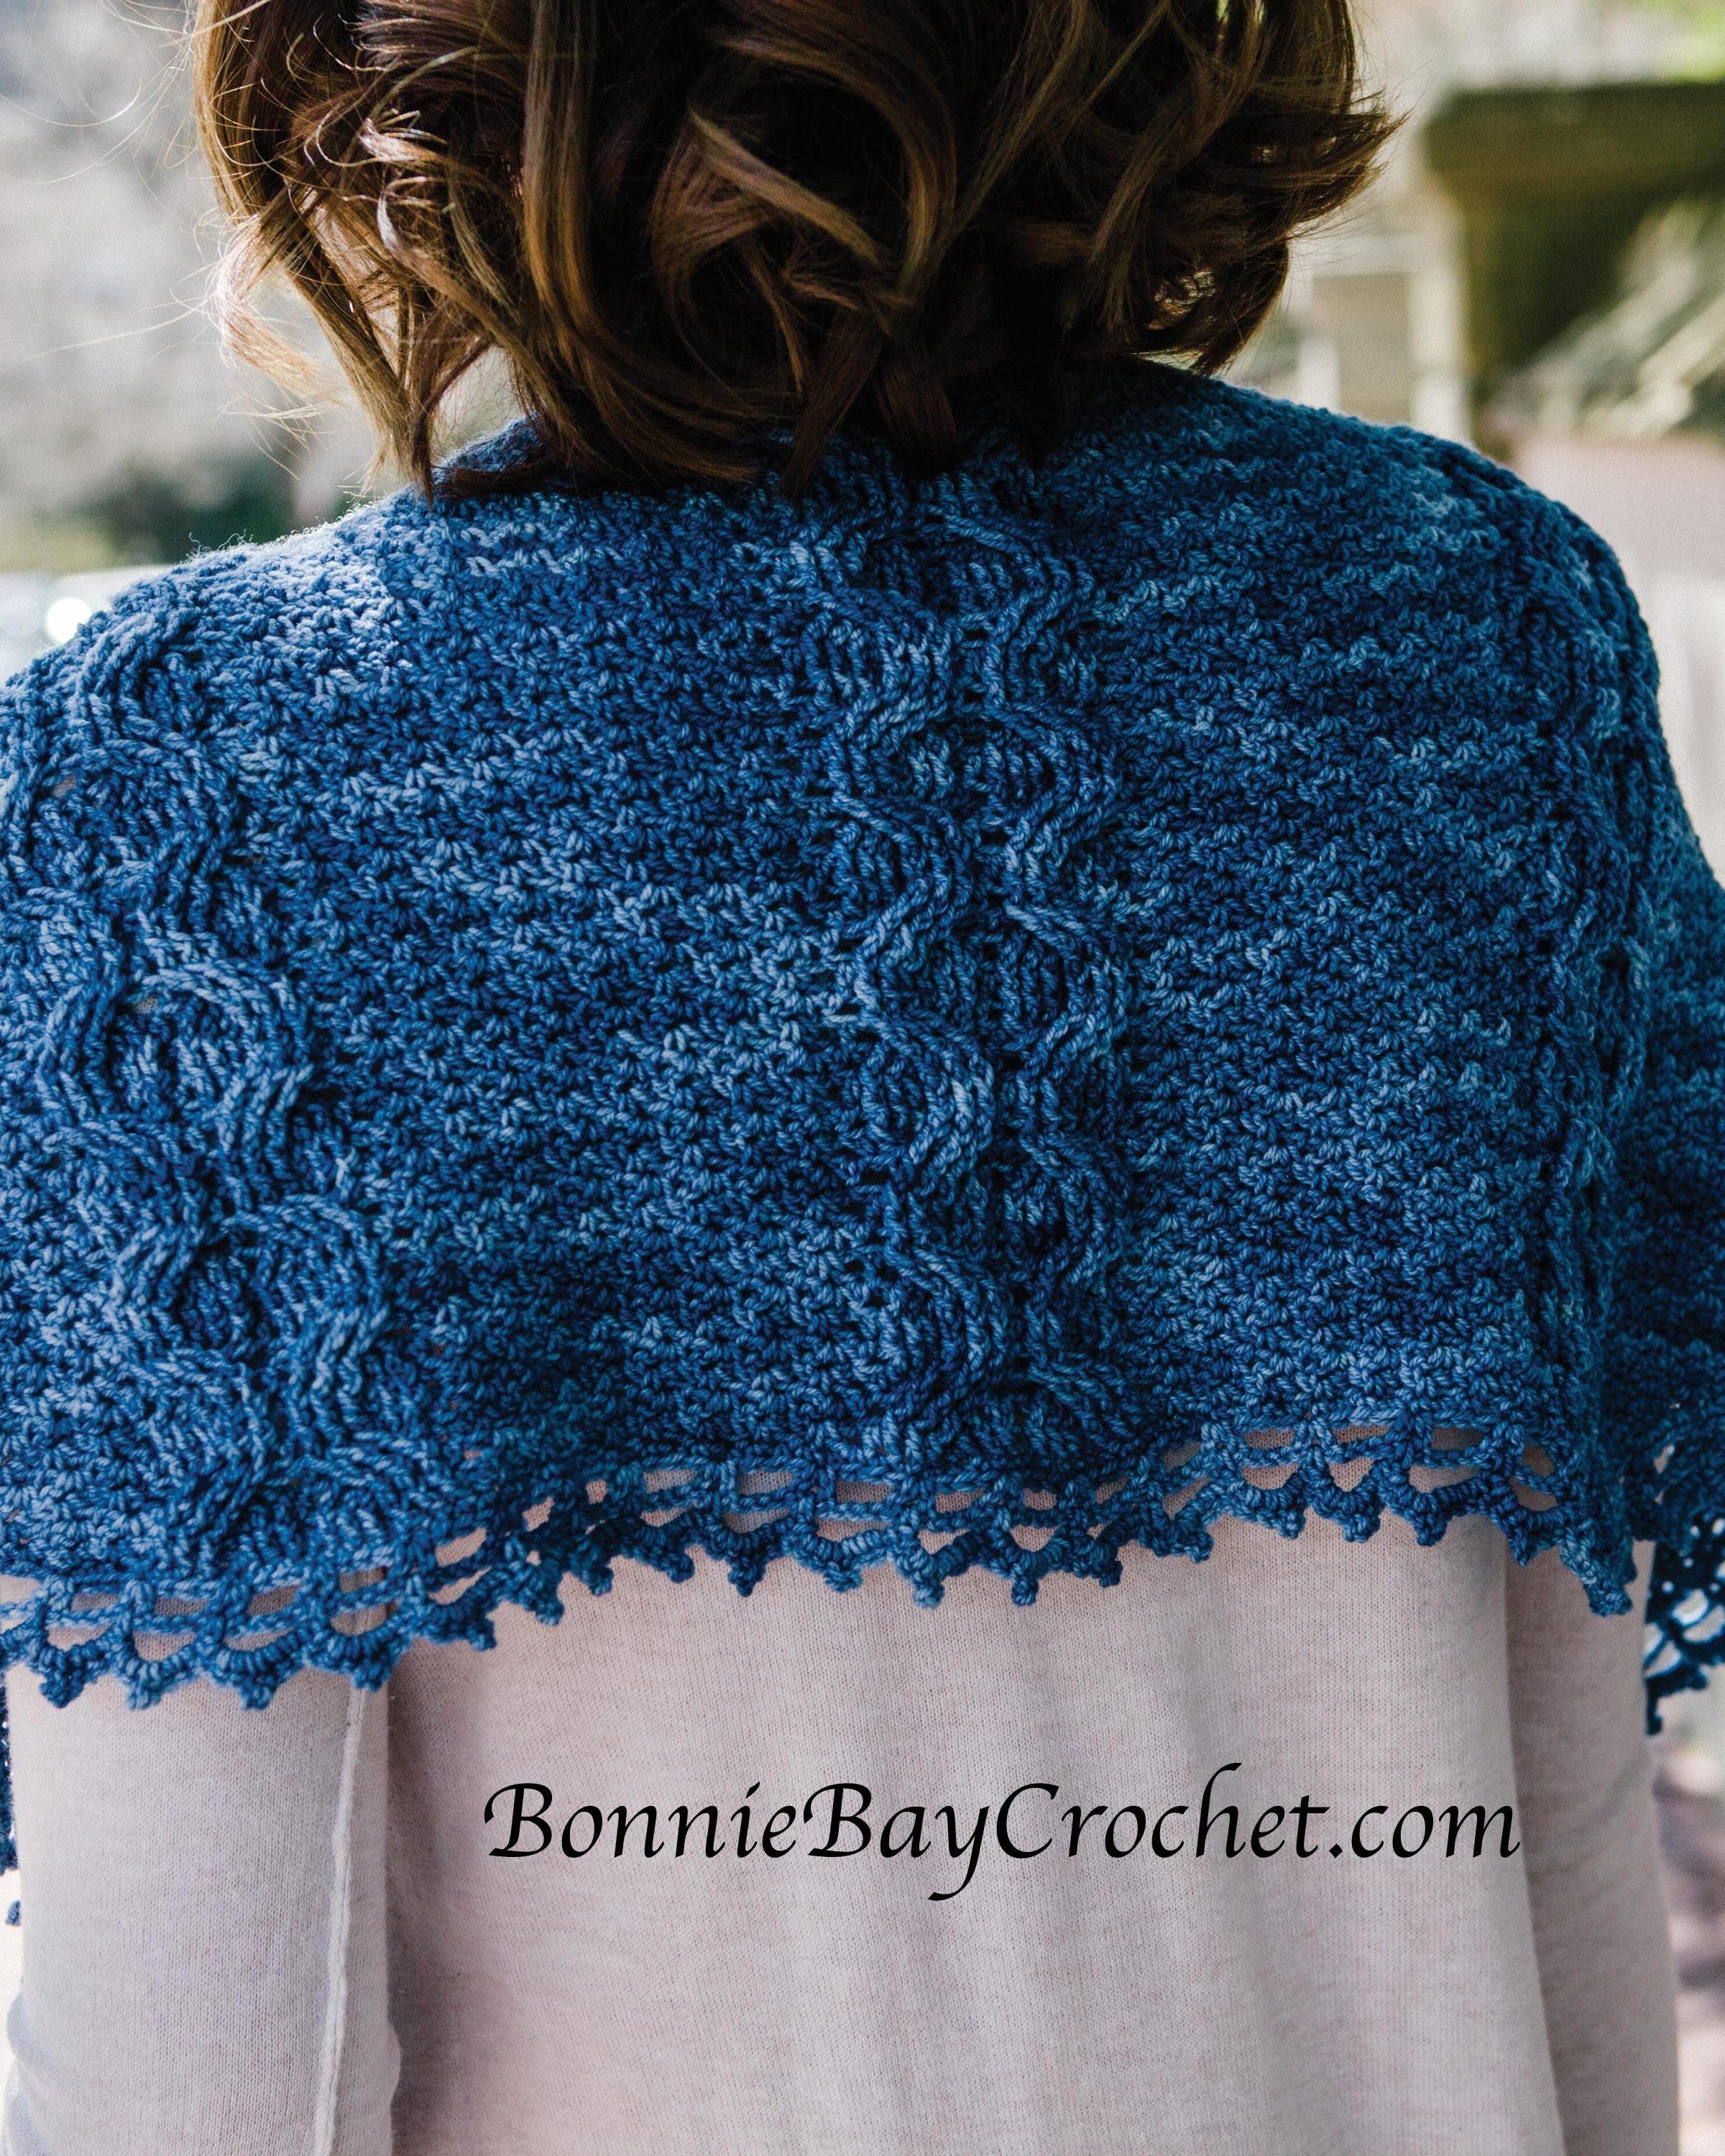 Blue moon shawl by bonnie barker celtic cable crochet httpswww blue moon shawl pattern by bonnie barker malabrigo sock in impressionist sky published in celtic cable crochet 18 crochet patterns for modern cabled bankloansurffo Image collections